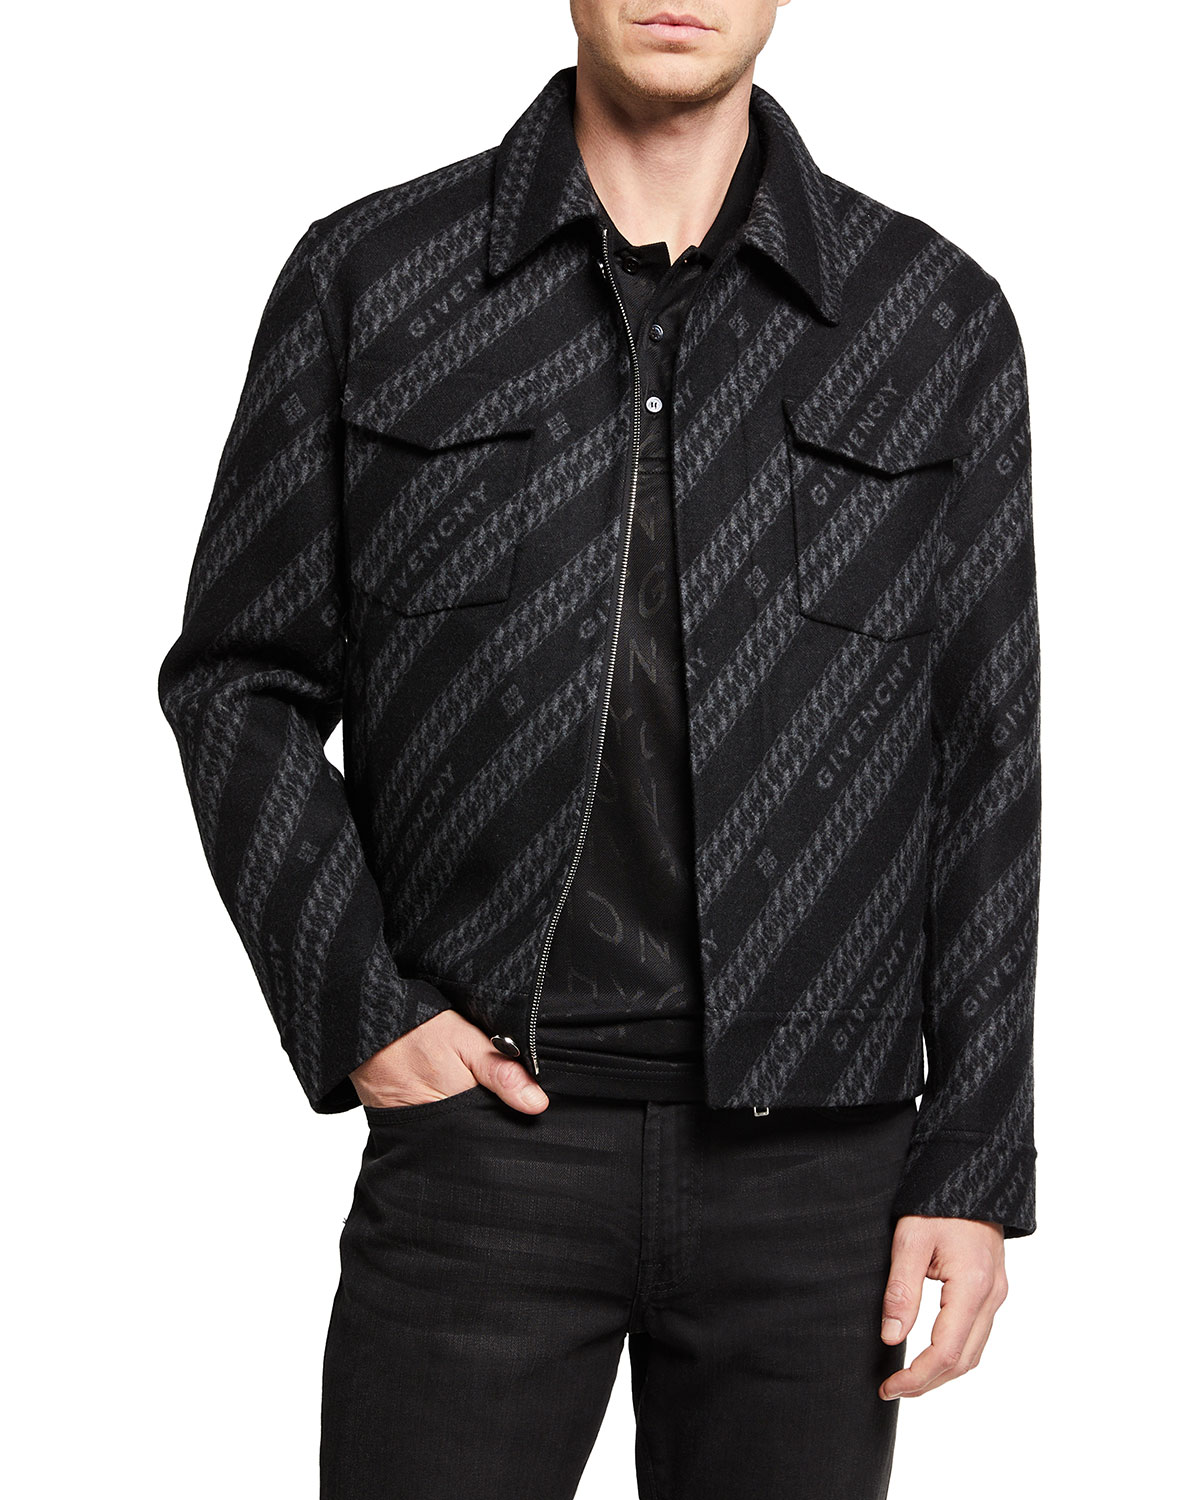 Givenchy MEN'S LOGO-CHAIN DOUBLE-FACE SHIRT JACKET